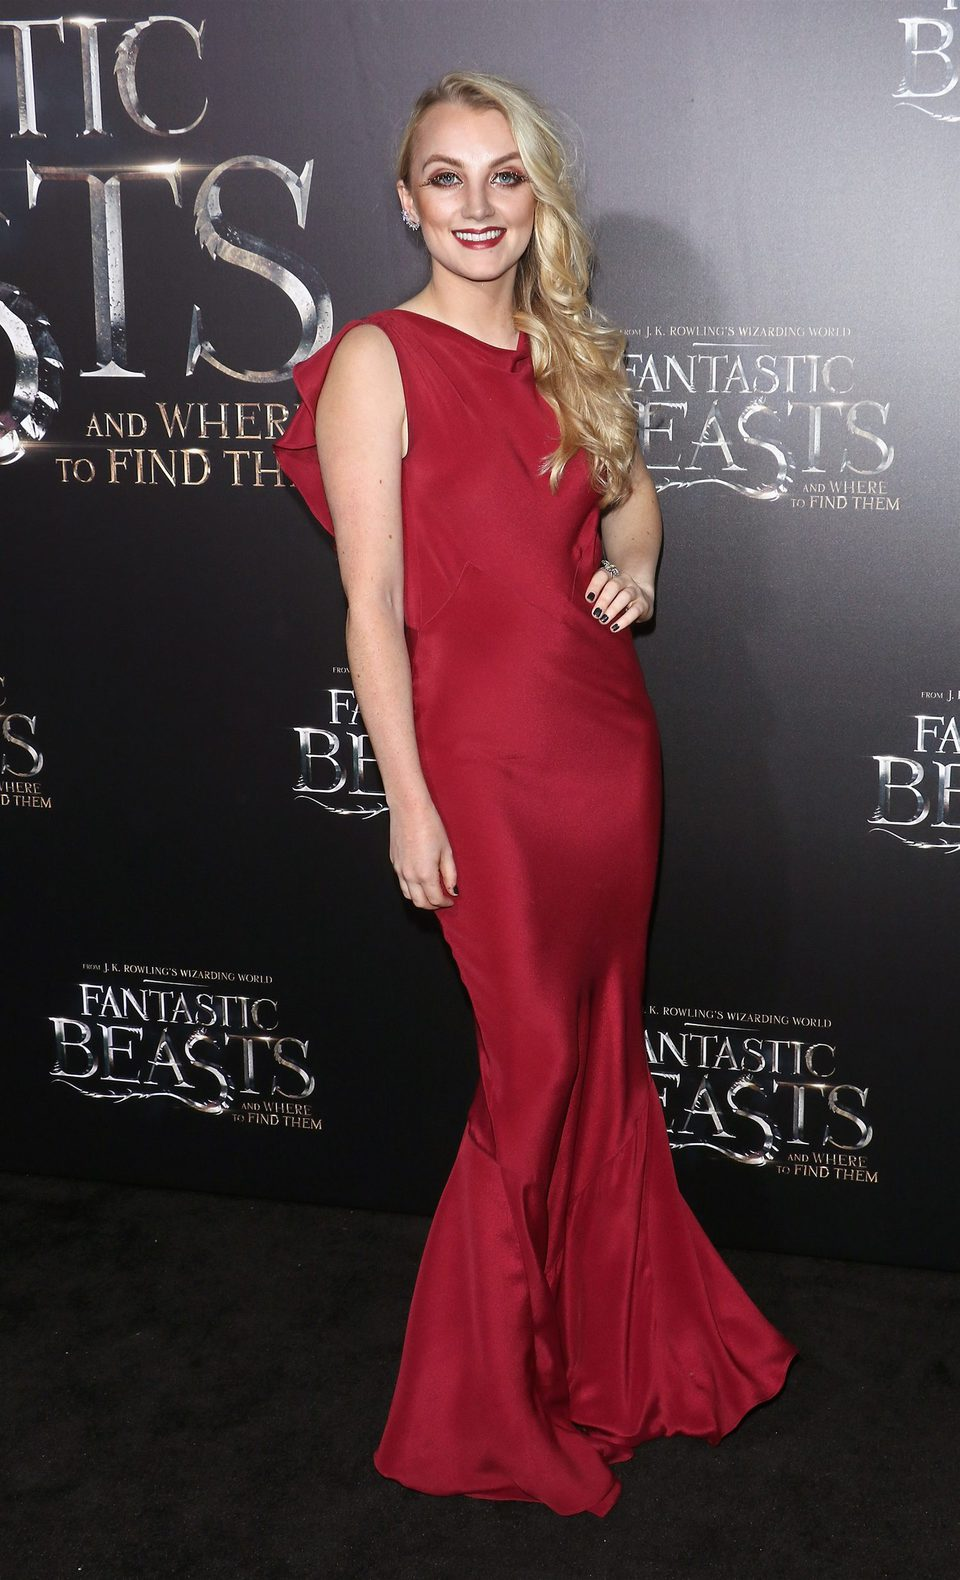 evanna lynch at the world premiere of fantastic beasts and where to